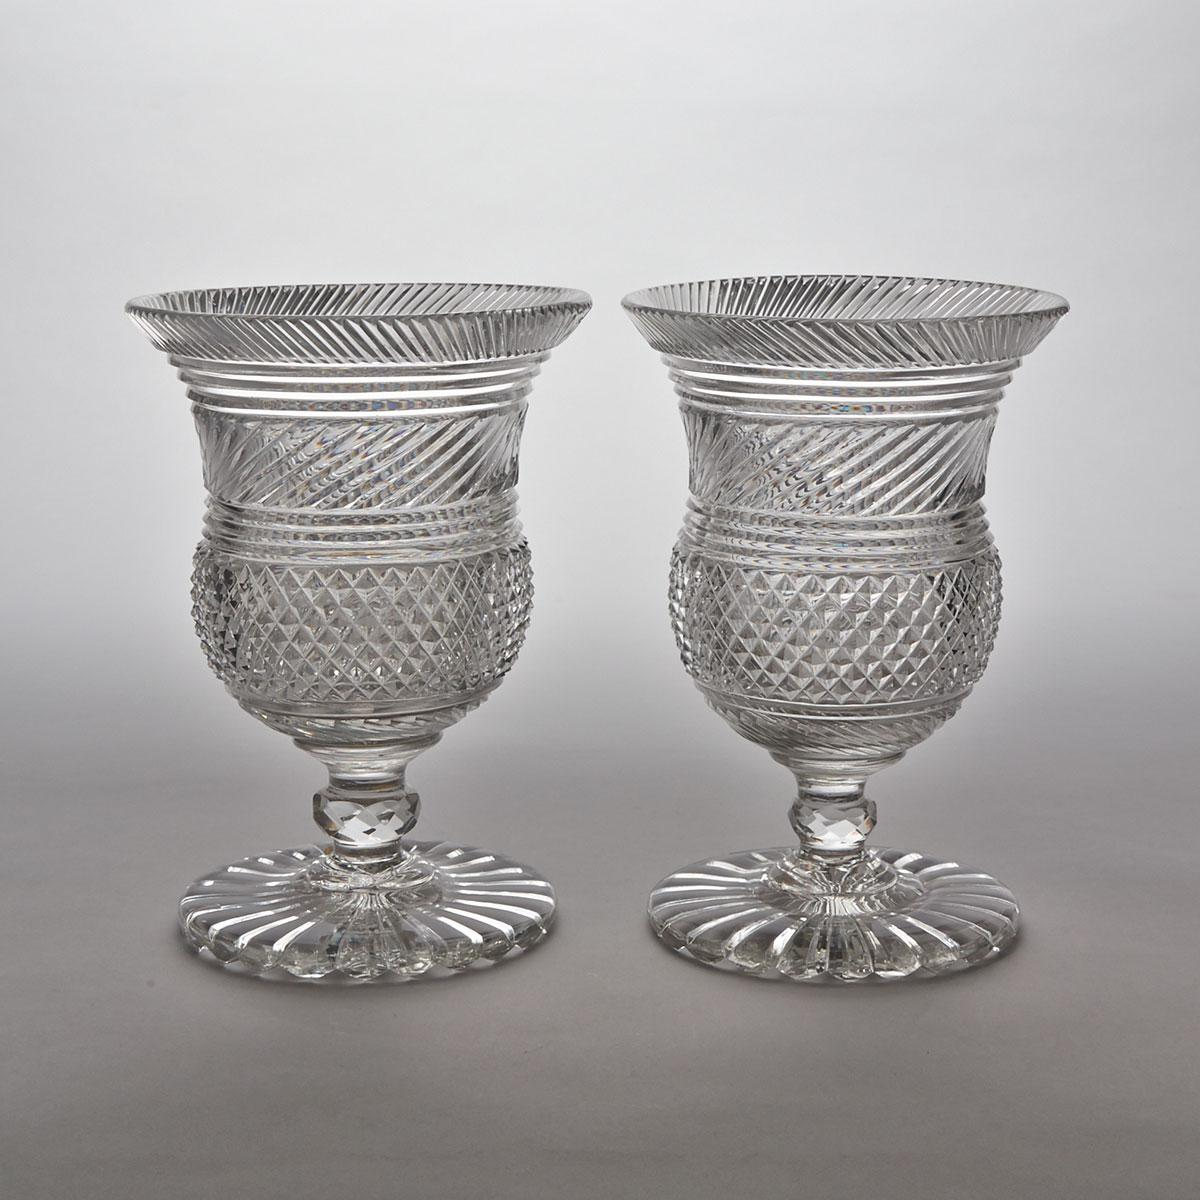 Pair of Anglo-Irish Cut Glass Vases, early 19th century